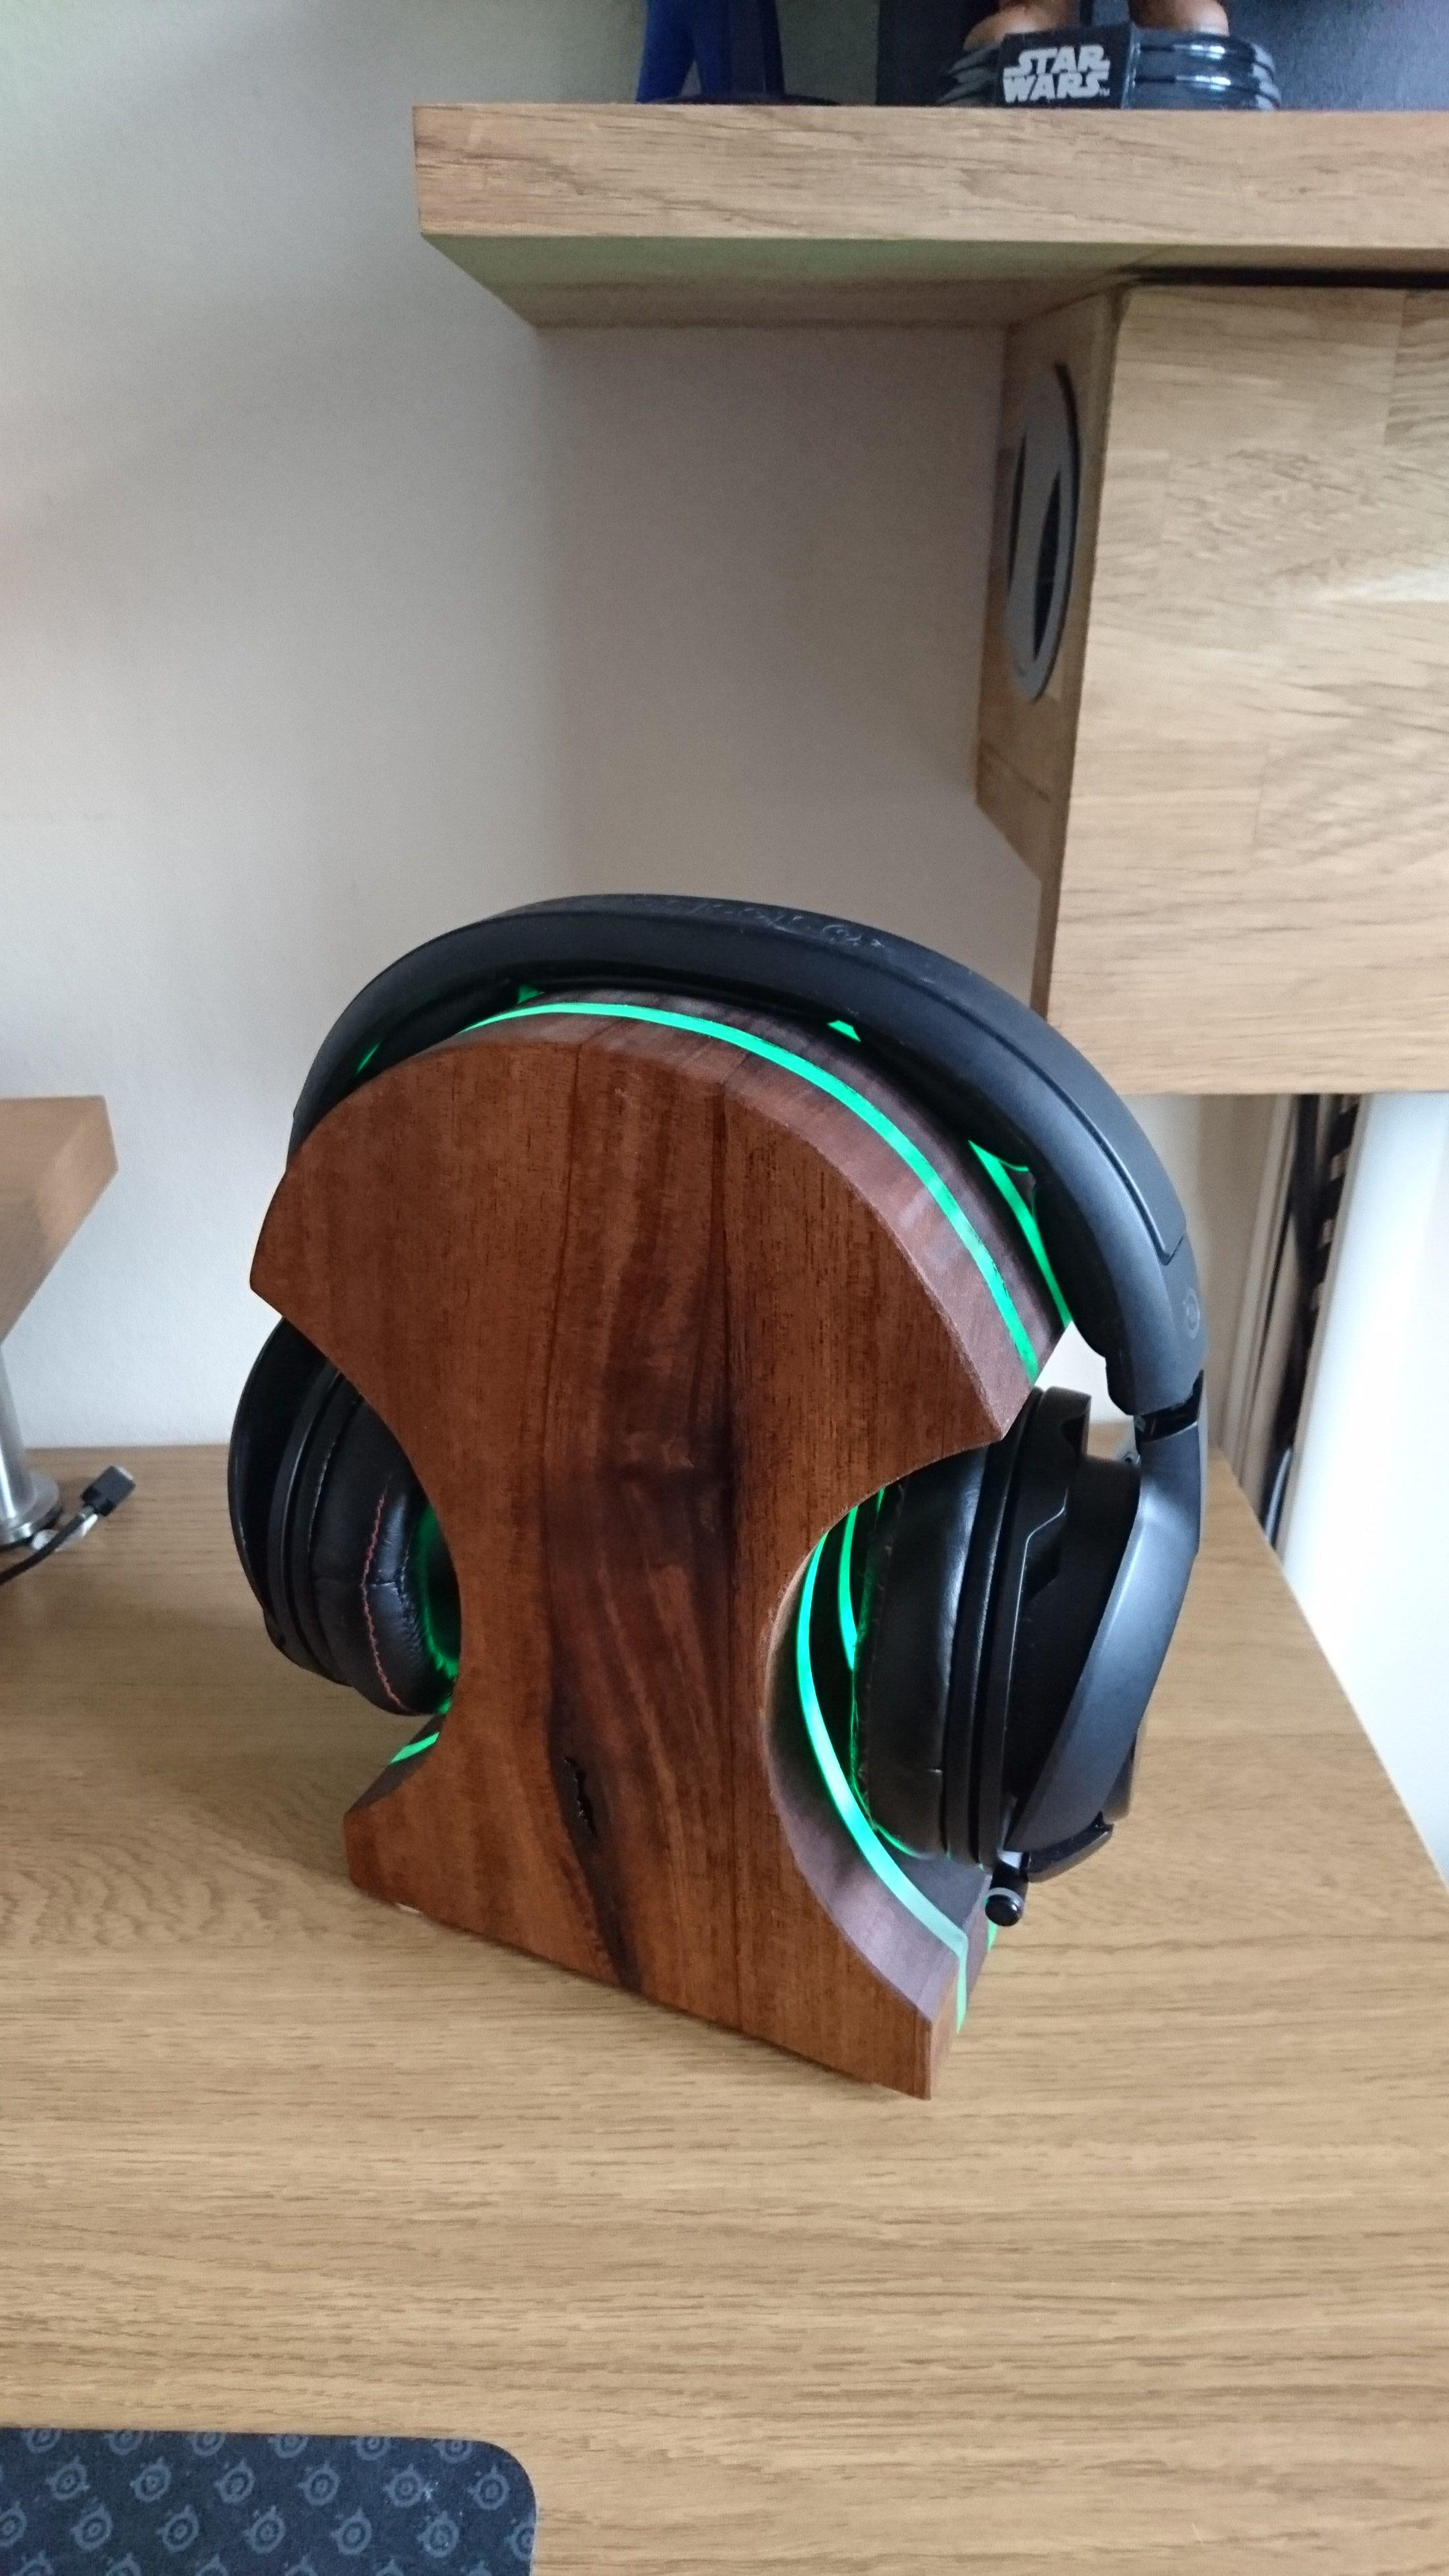 Best ideas about DIY Headphone Stand . Save or Pin 50 Best DIY Headphone Stand Ideas Now.